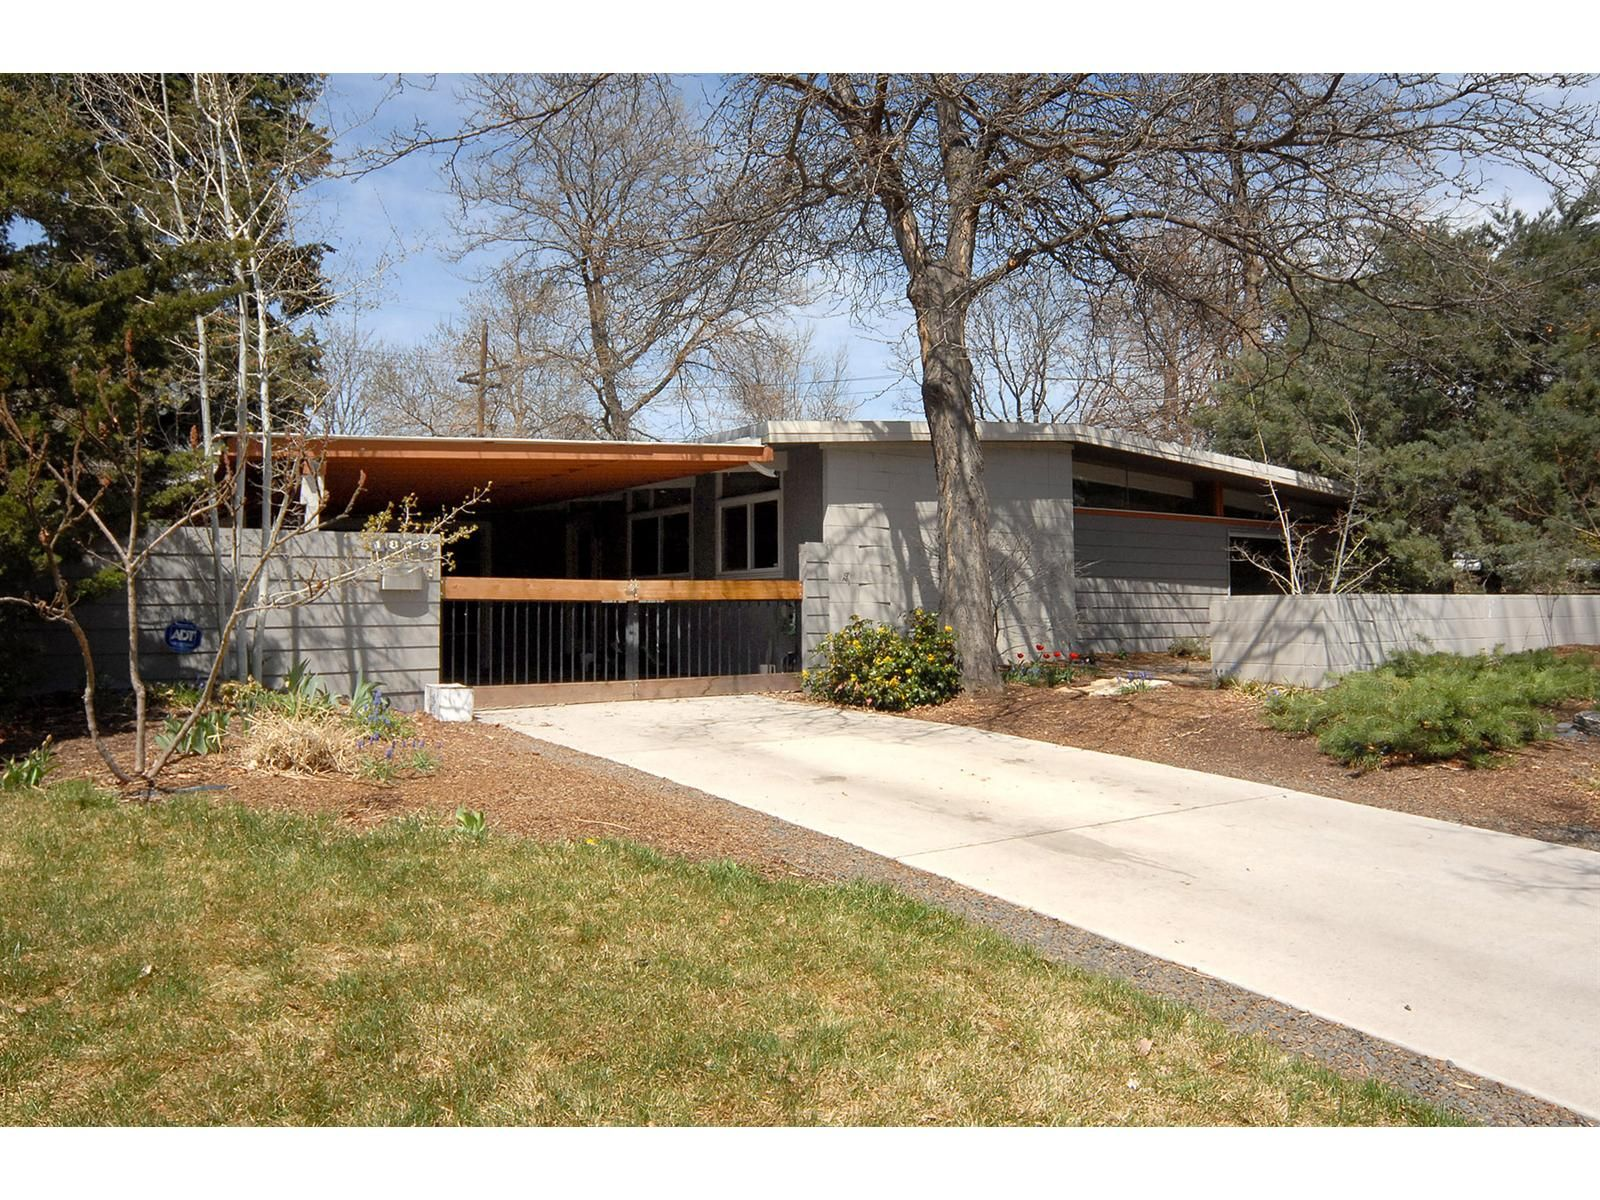 midcentury modern homes Mid Century Modern Home in